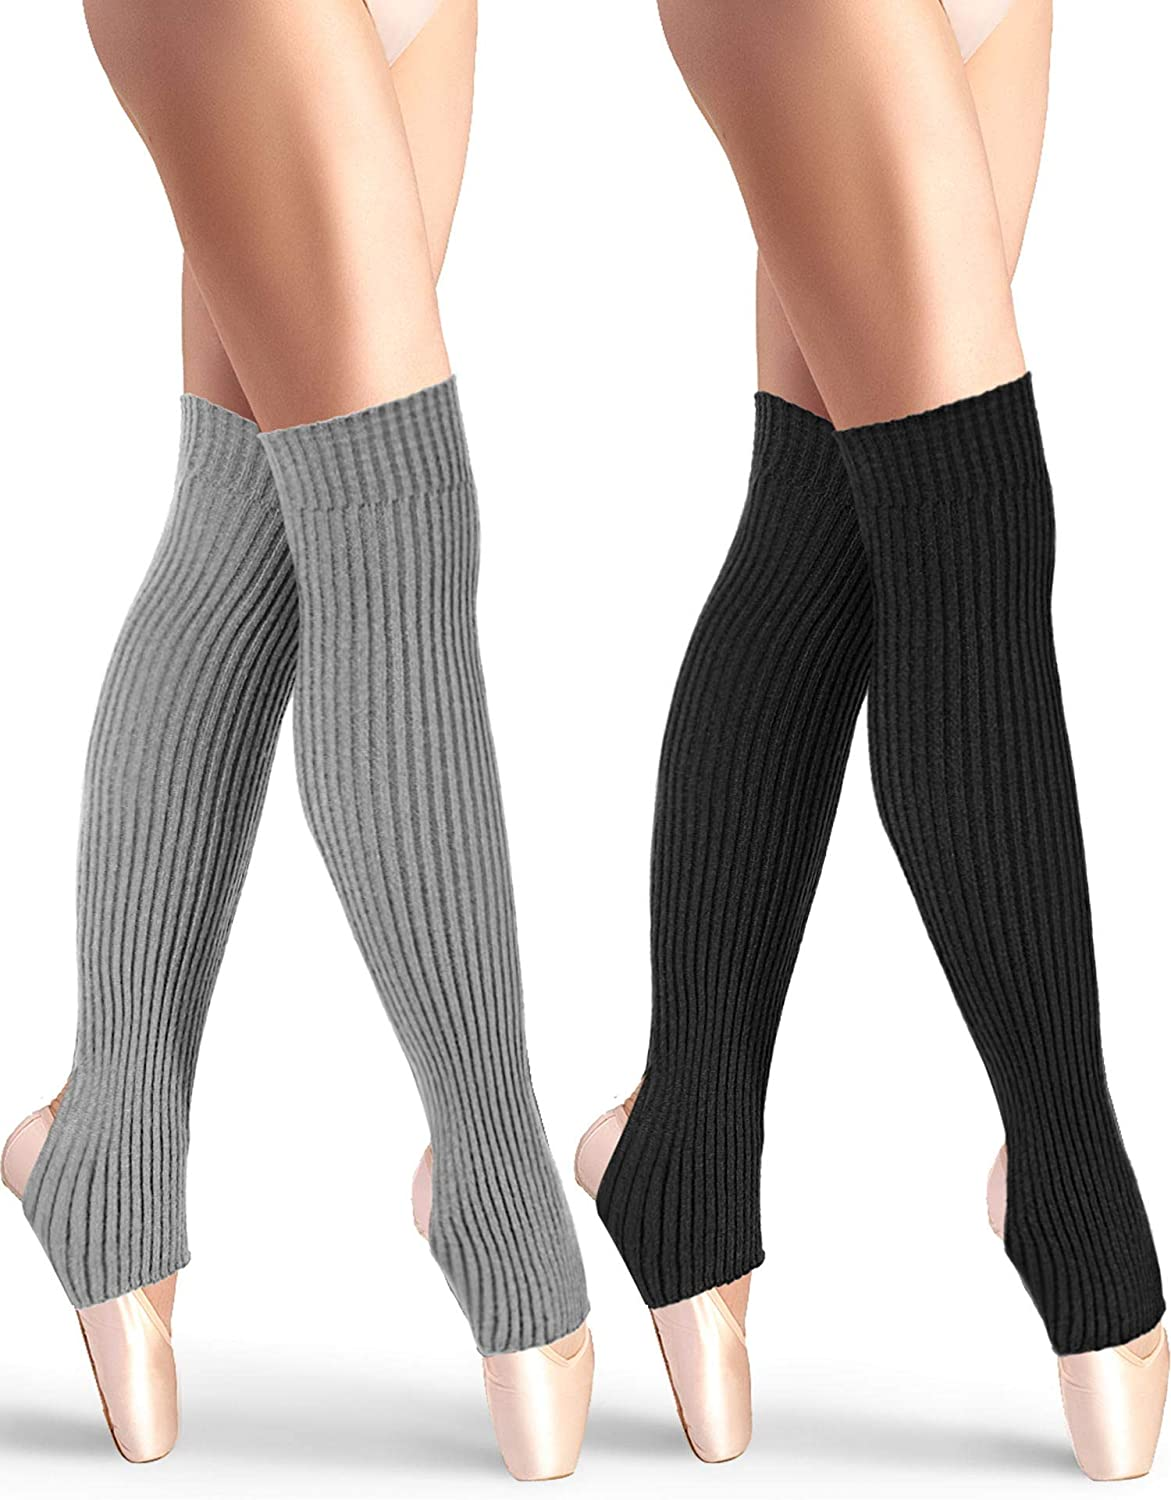 2 Pairs Stirrup Leg Warmers Straight over the Knee Socks 21.65 Inch for Women